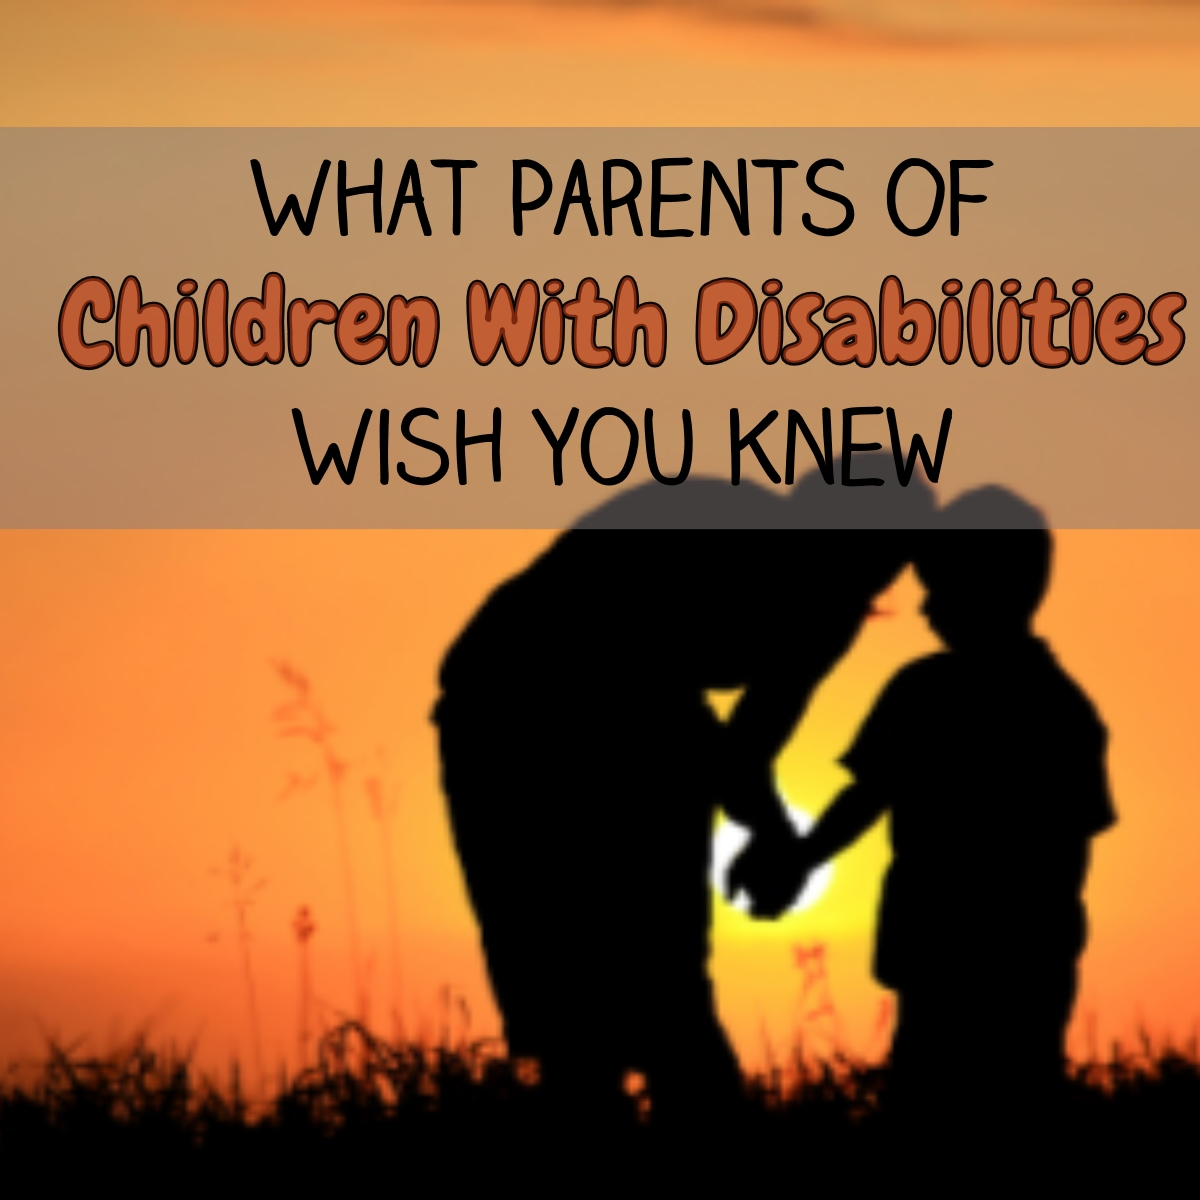 What Parents of Children with Disabilities Wish You Knew